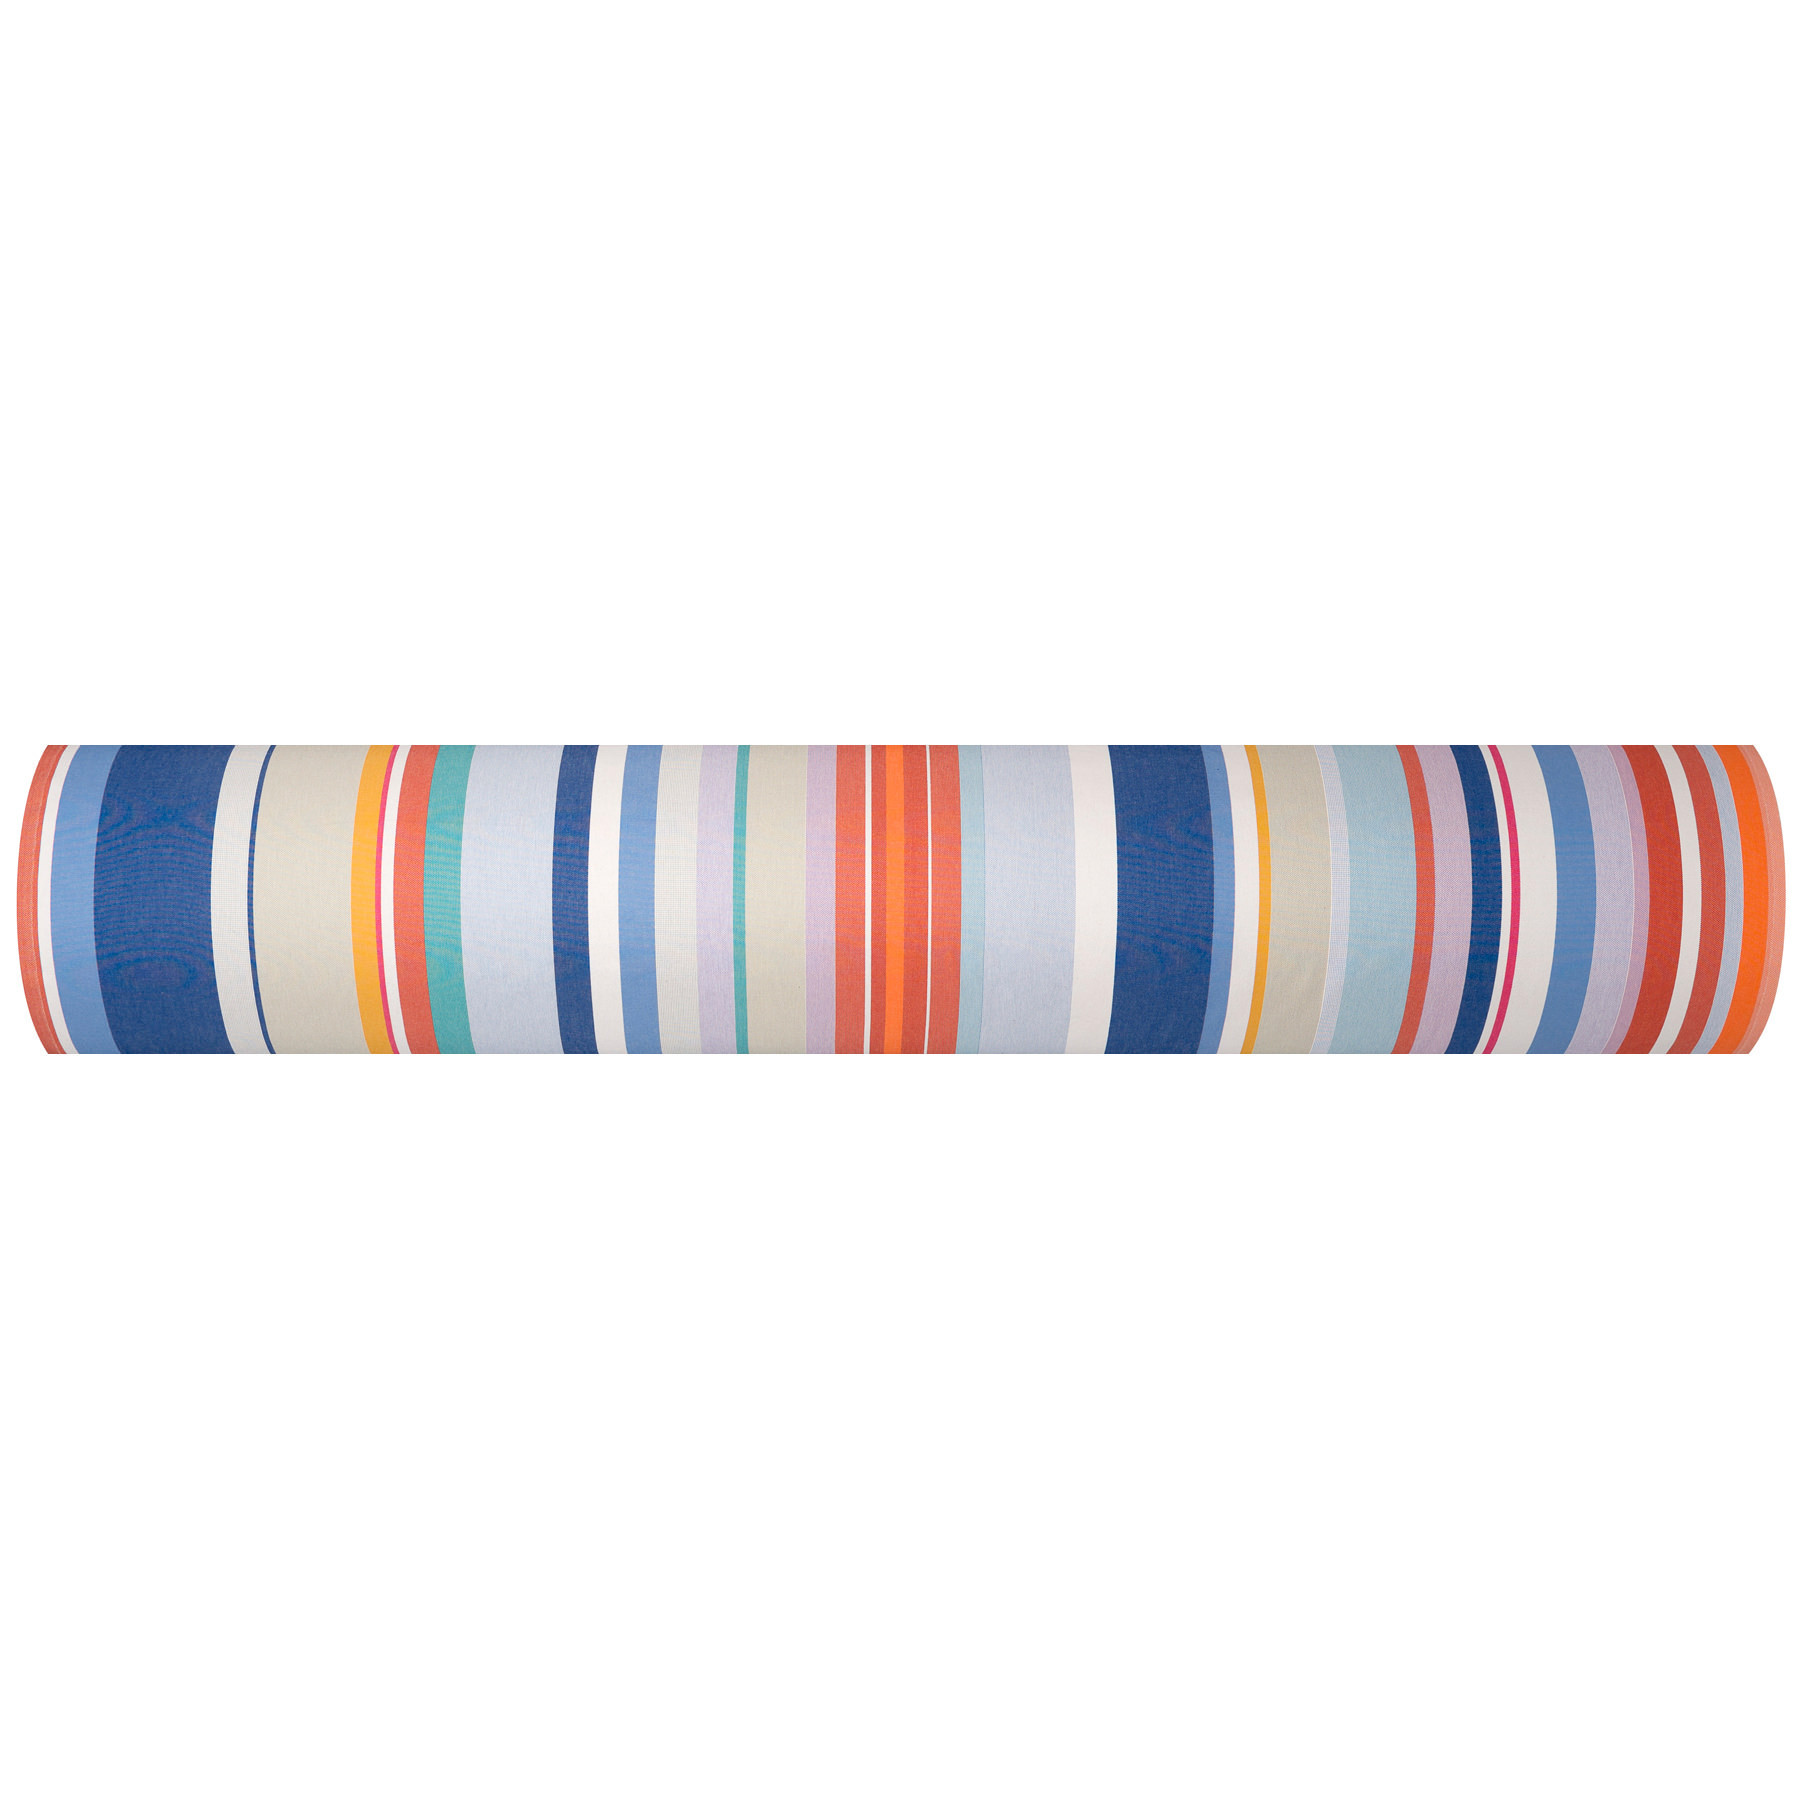 Multicolored Striped Fabrics - Canet en Roussillon